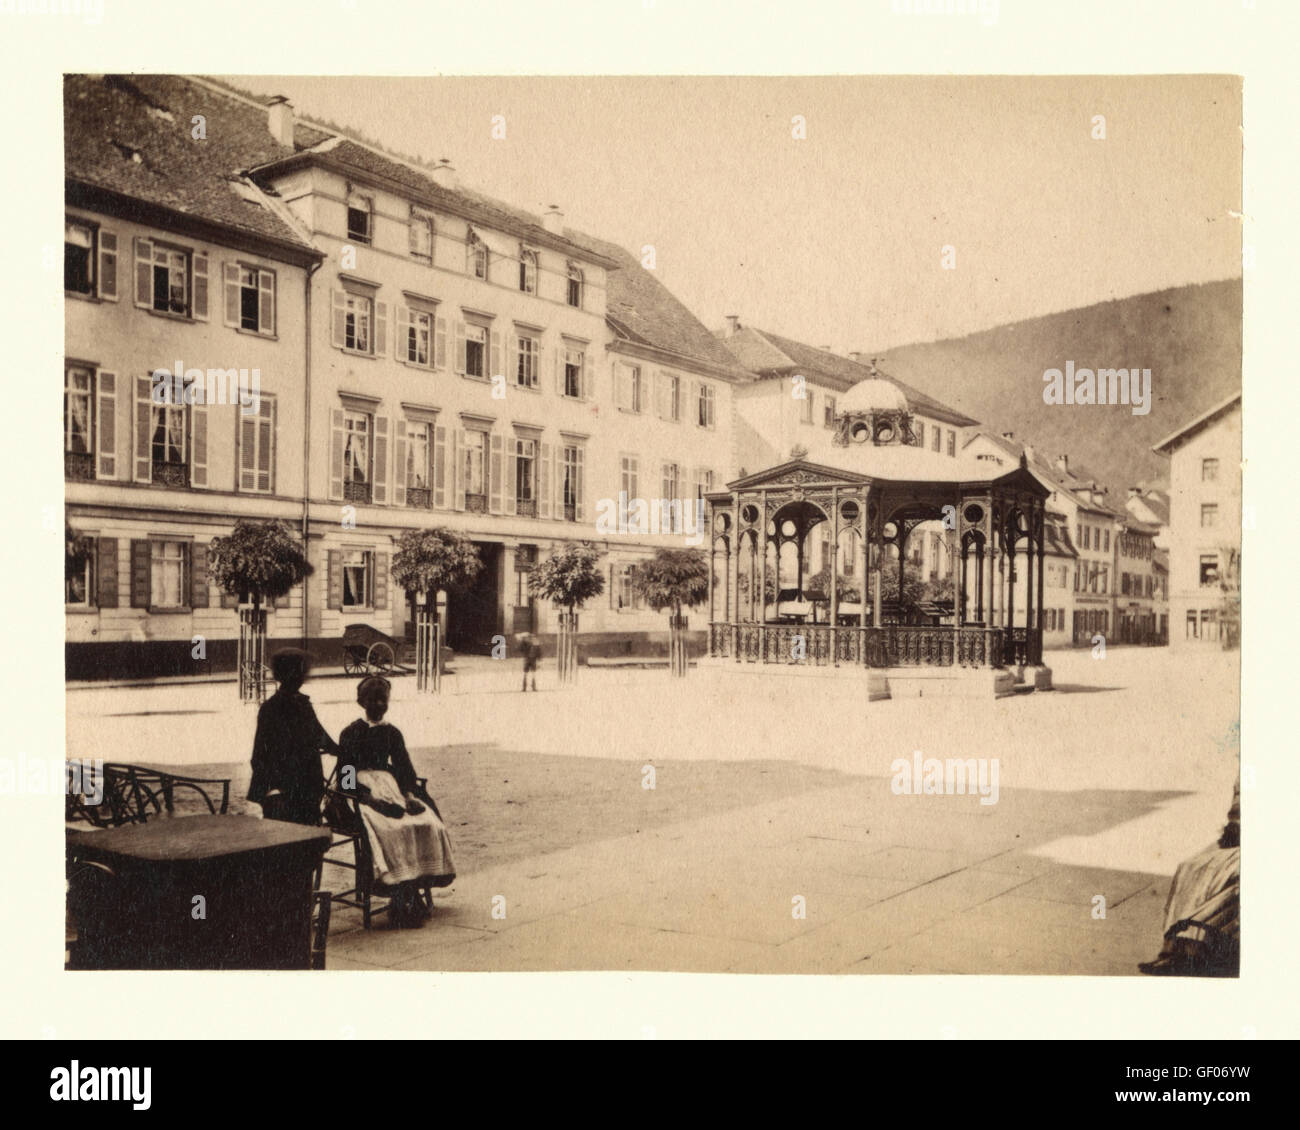 Town square and bandstand of a town in the Black Forest region of Germany, c. 1870. Possibly Calw. L Meder, Heidelberg - Stock Image